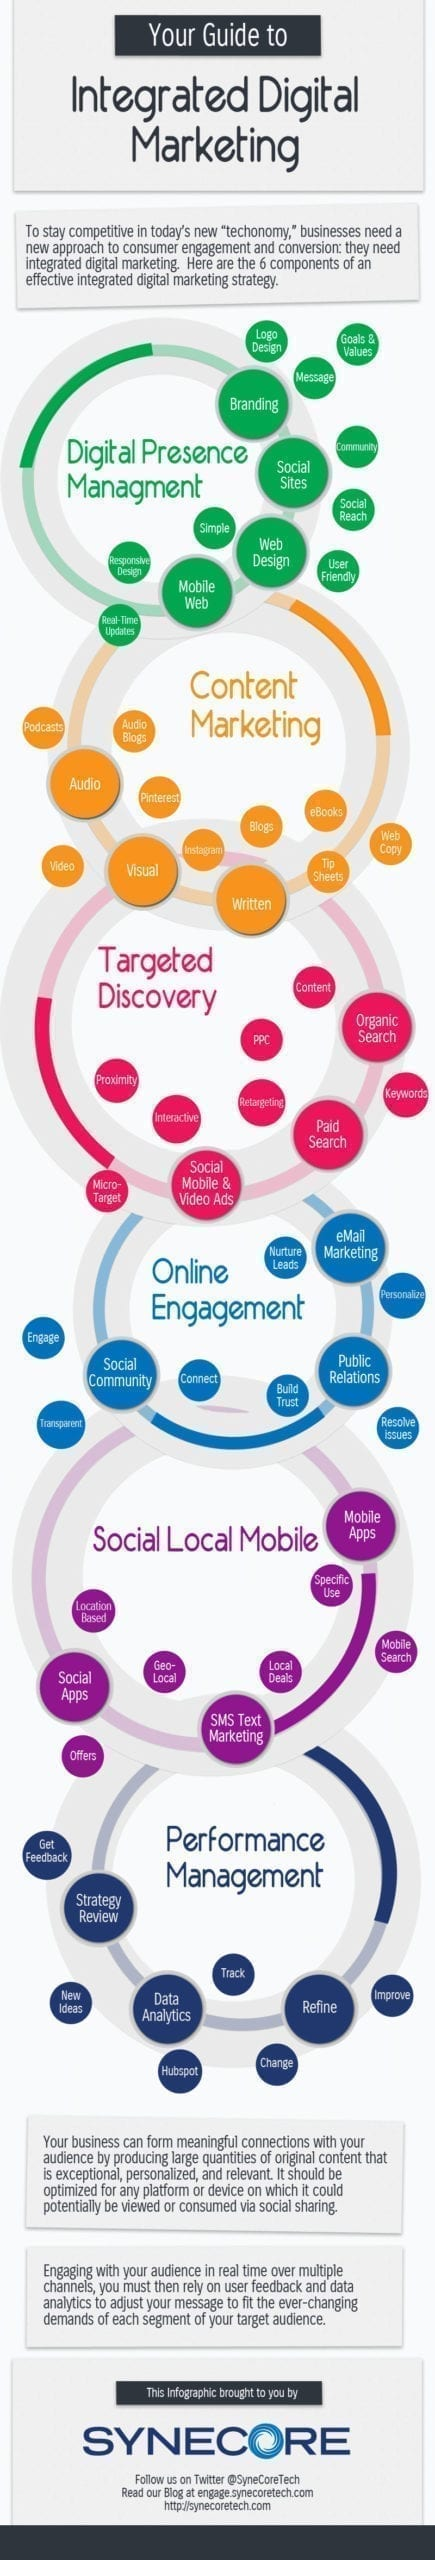 Guide-to-Integrated-Digital-Marketing